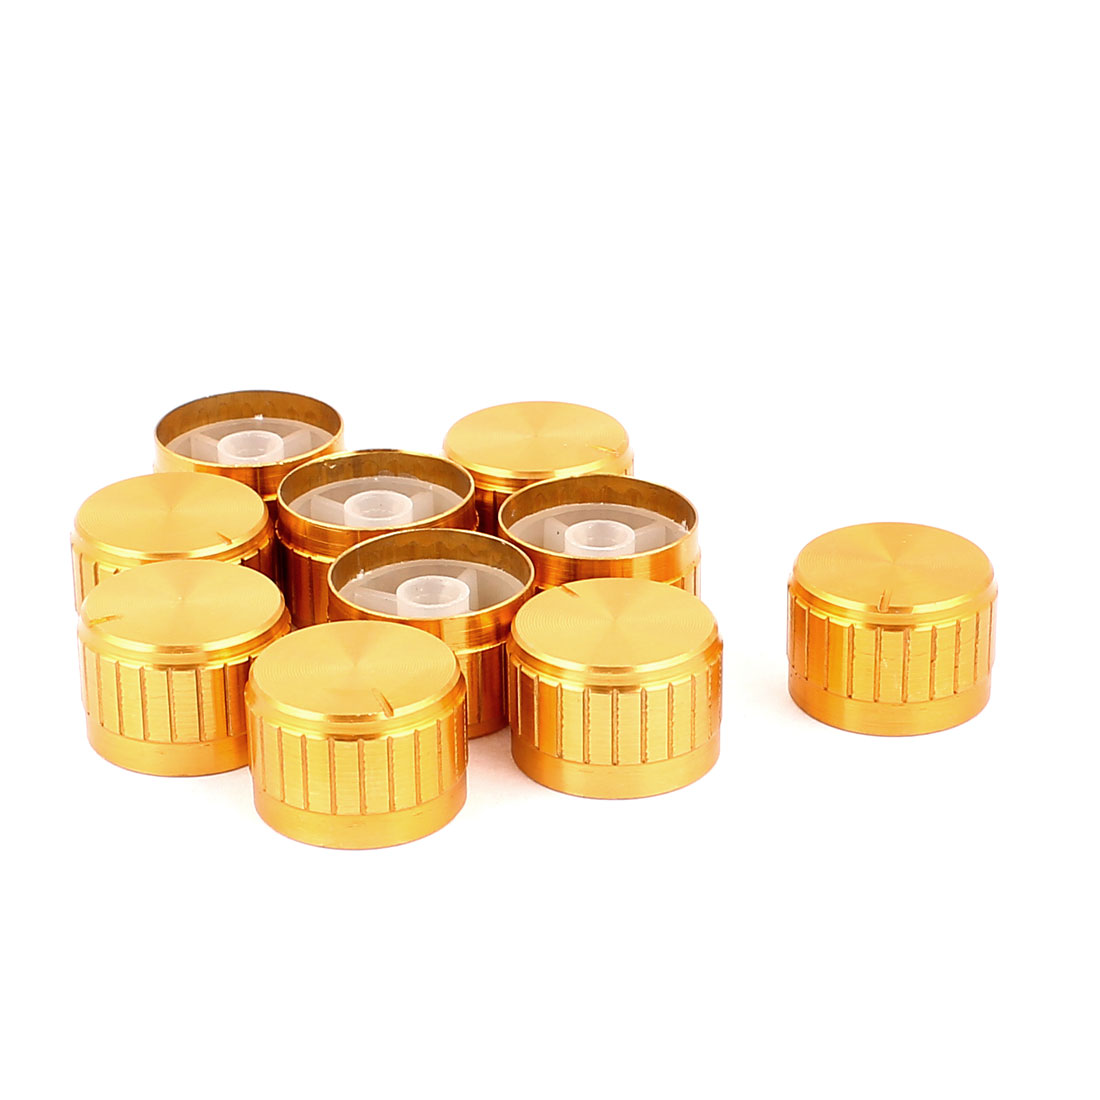 10 Pcs 26mm x 6mm Potentiometer Control Switch Volume Cap Aluminium Alloy Knurled Button Gold Tone